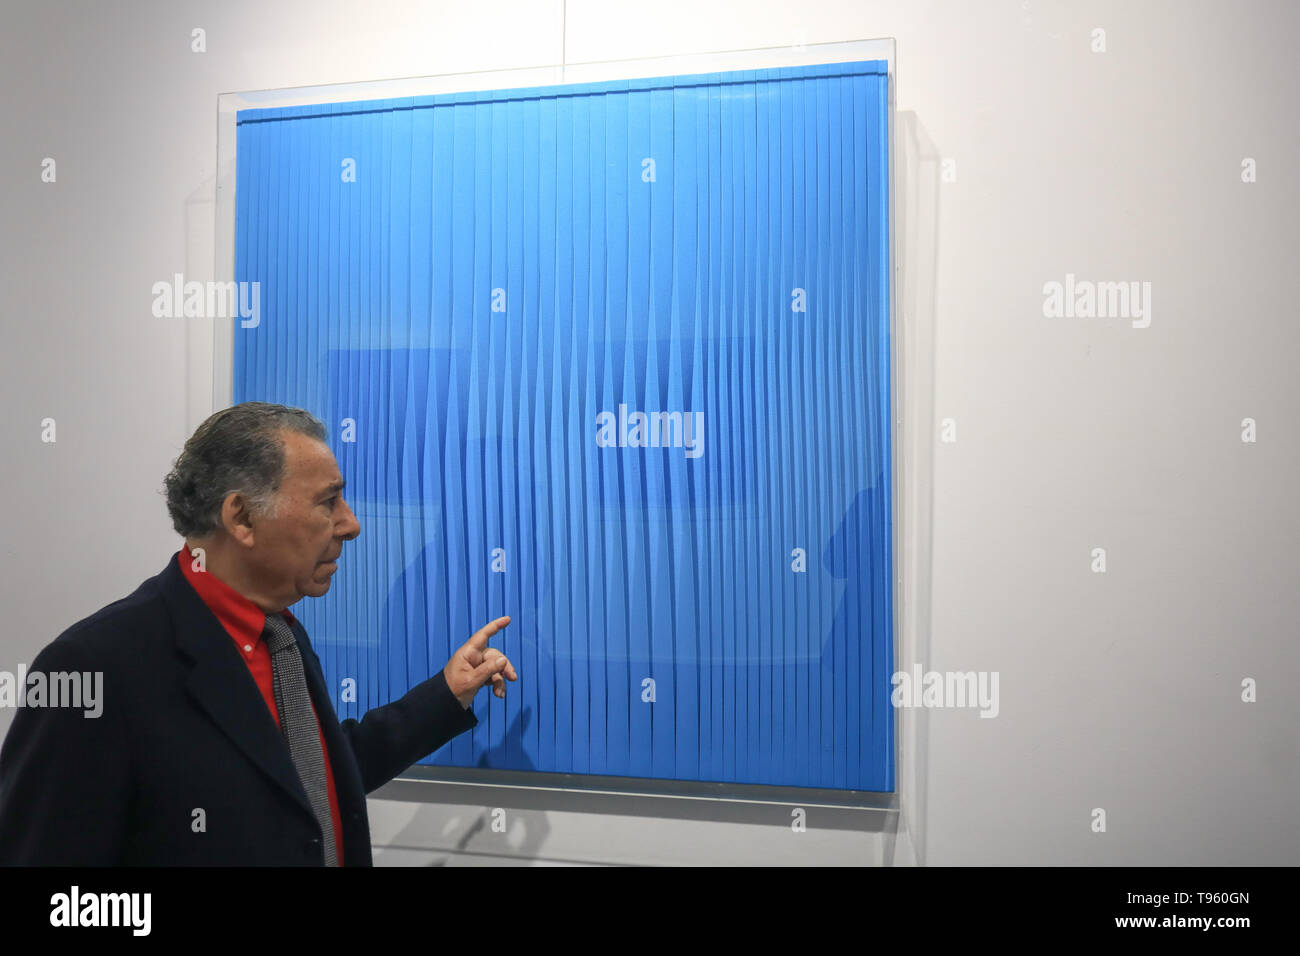 Opera Gallery London, UK. 17th May, 2019. Image: Pino Manos with Sincronicità Blu reale, 2018, Mixed Media on canvas. Press Preview at the Opera Gallery of new exhibition centred on the art movement of Spatialism and gathering some of the most celebrated Italian artists of the 20th century, including Lucio Fontana, Turi Simeti, Agostino Bonalumi and Enrico Castellani Credit: amer ghazzal/Alamy Live News - Stock Image